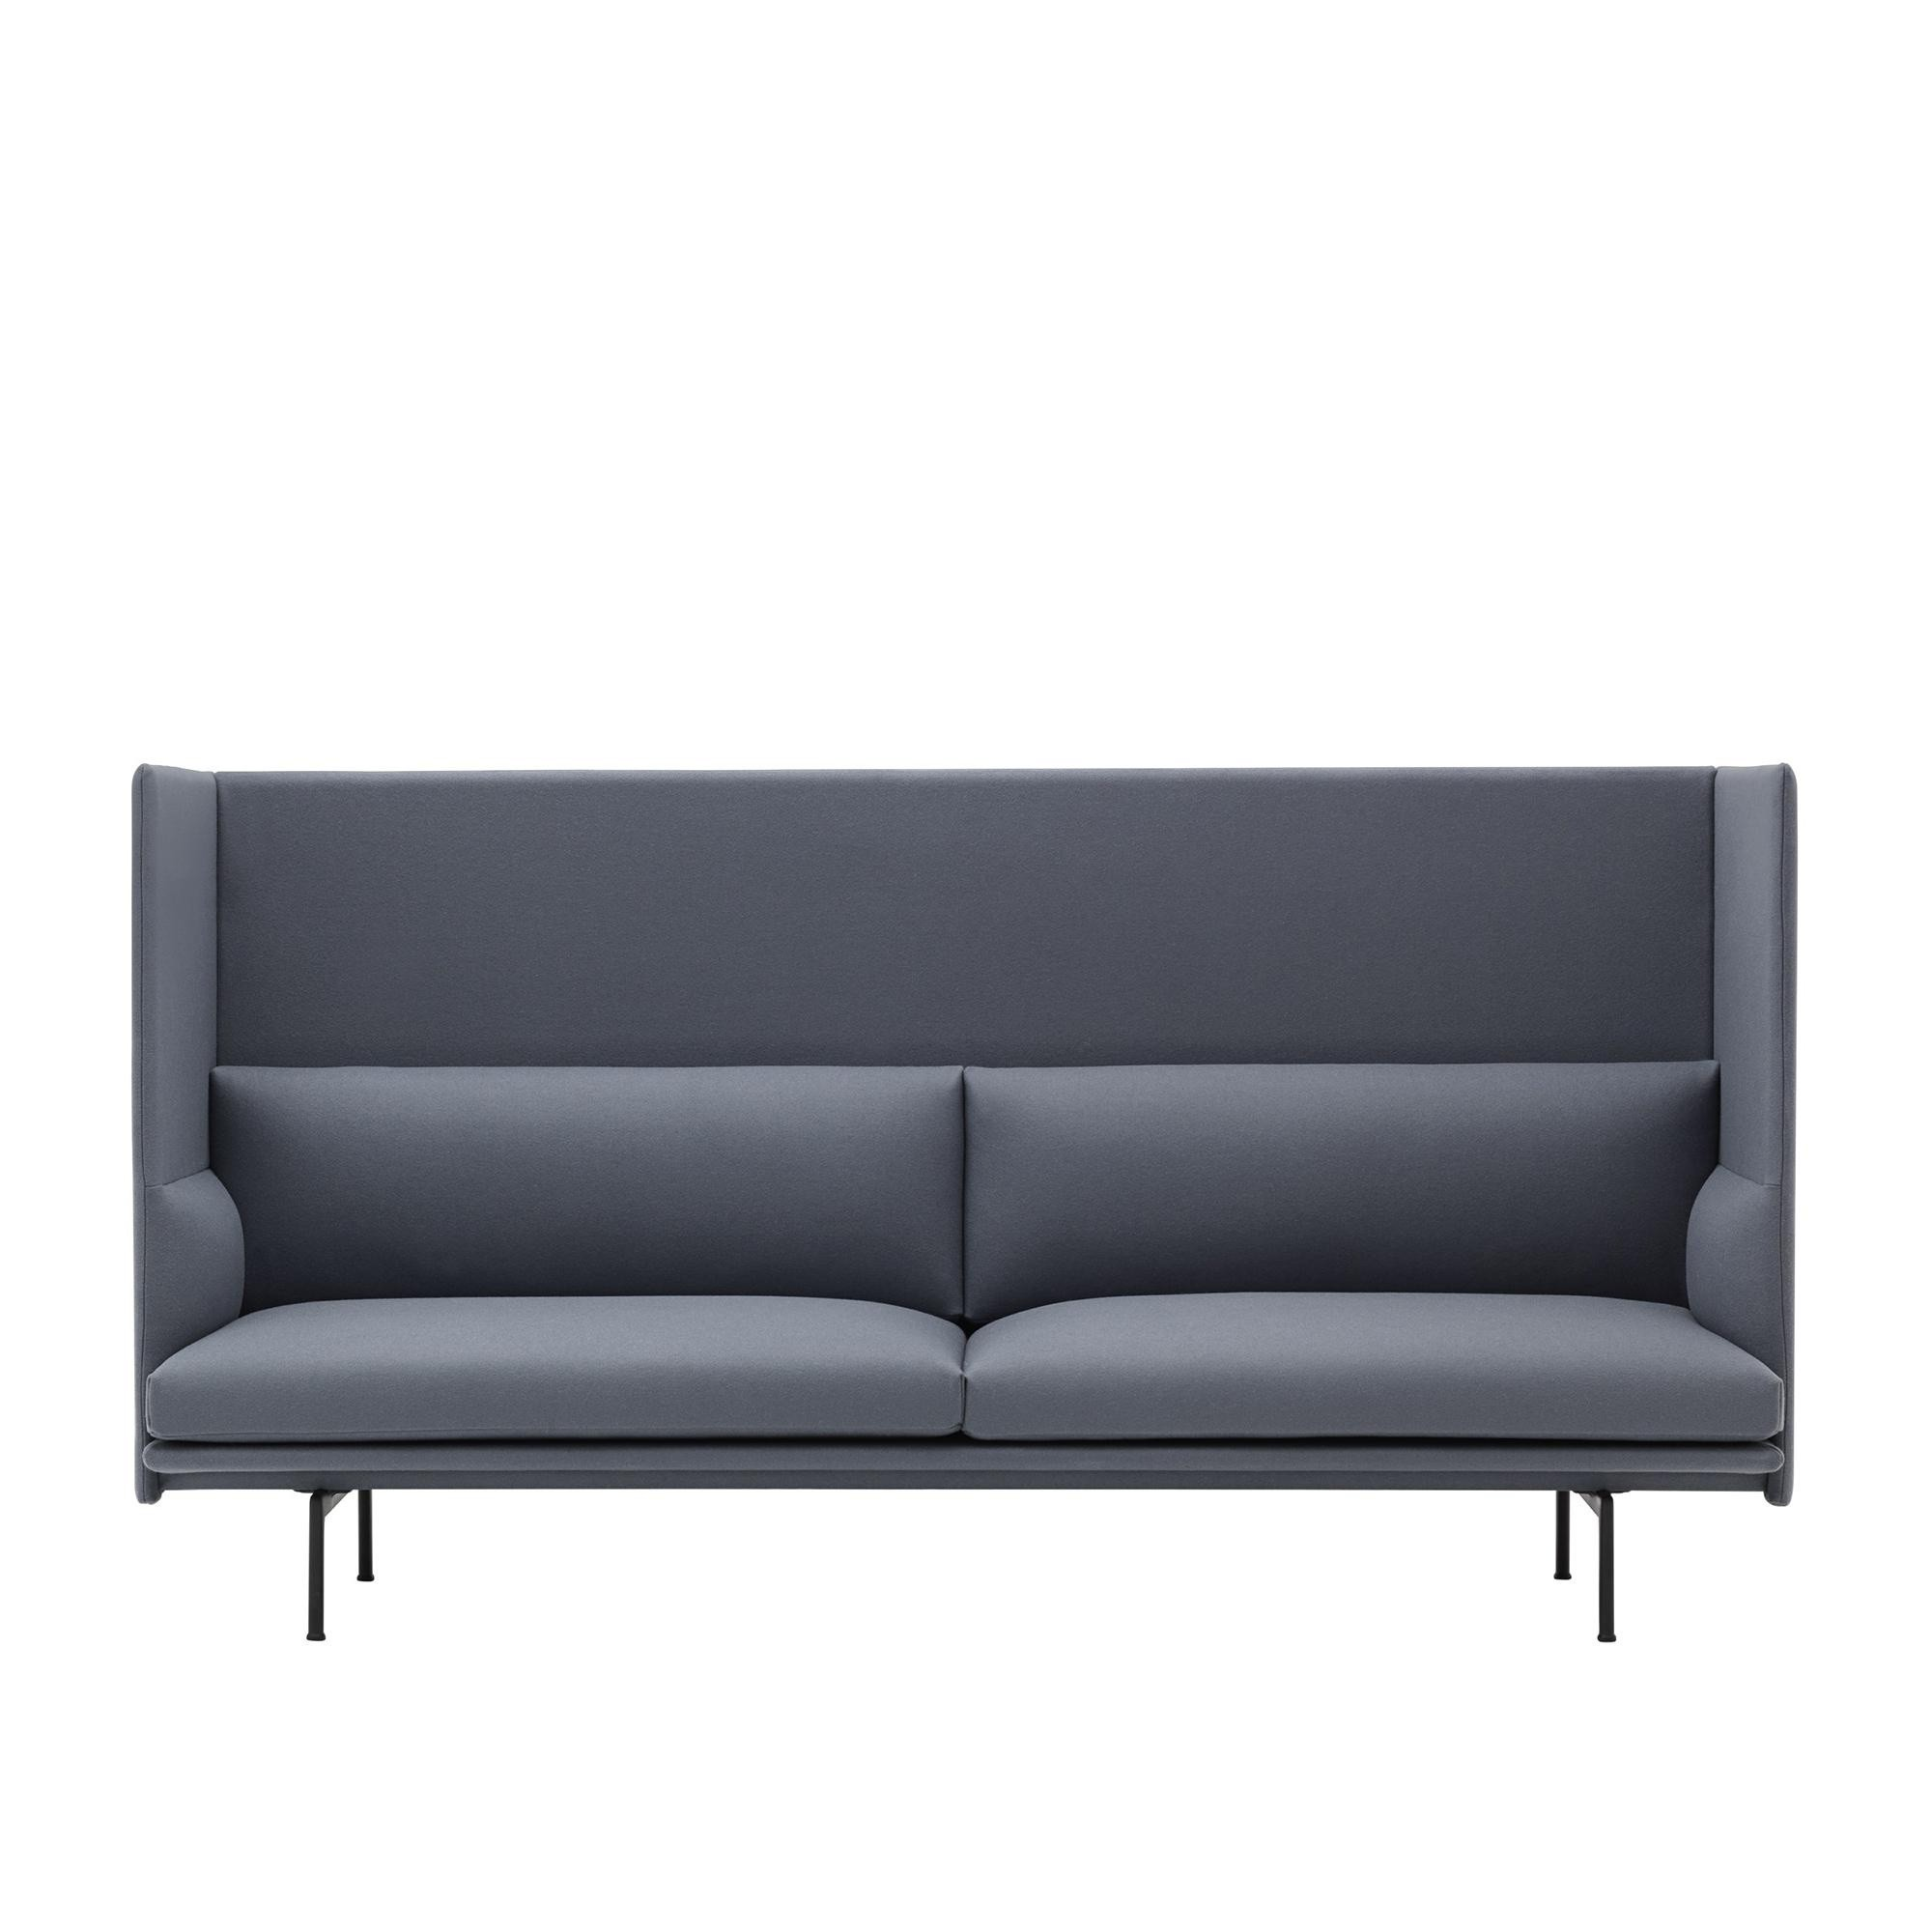 Outdoor Patio Couch Set, Muuto Outline Highback Sofa 3 Seater Ambientedirect